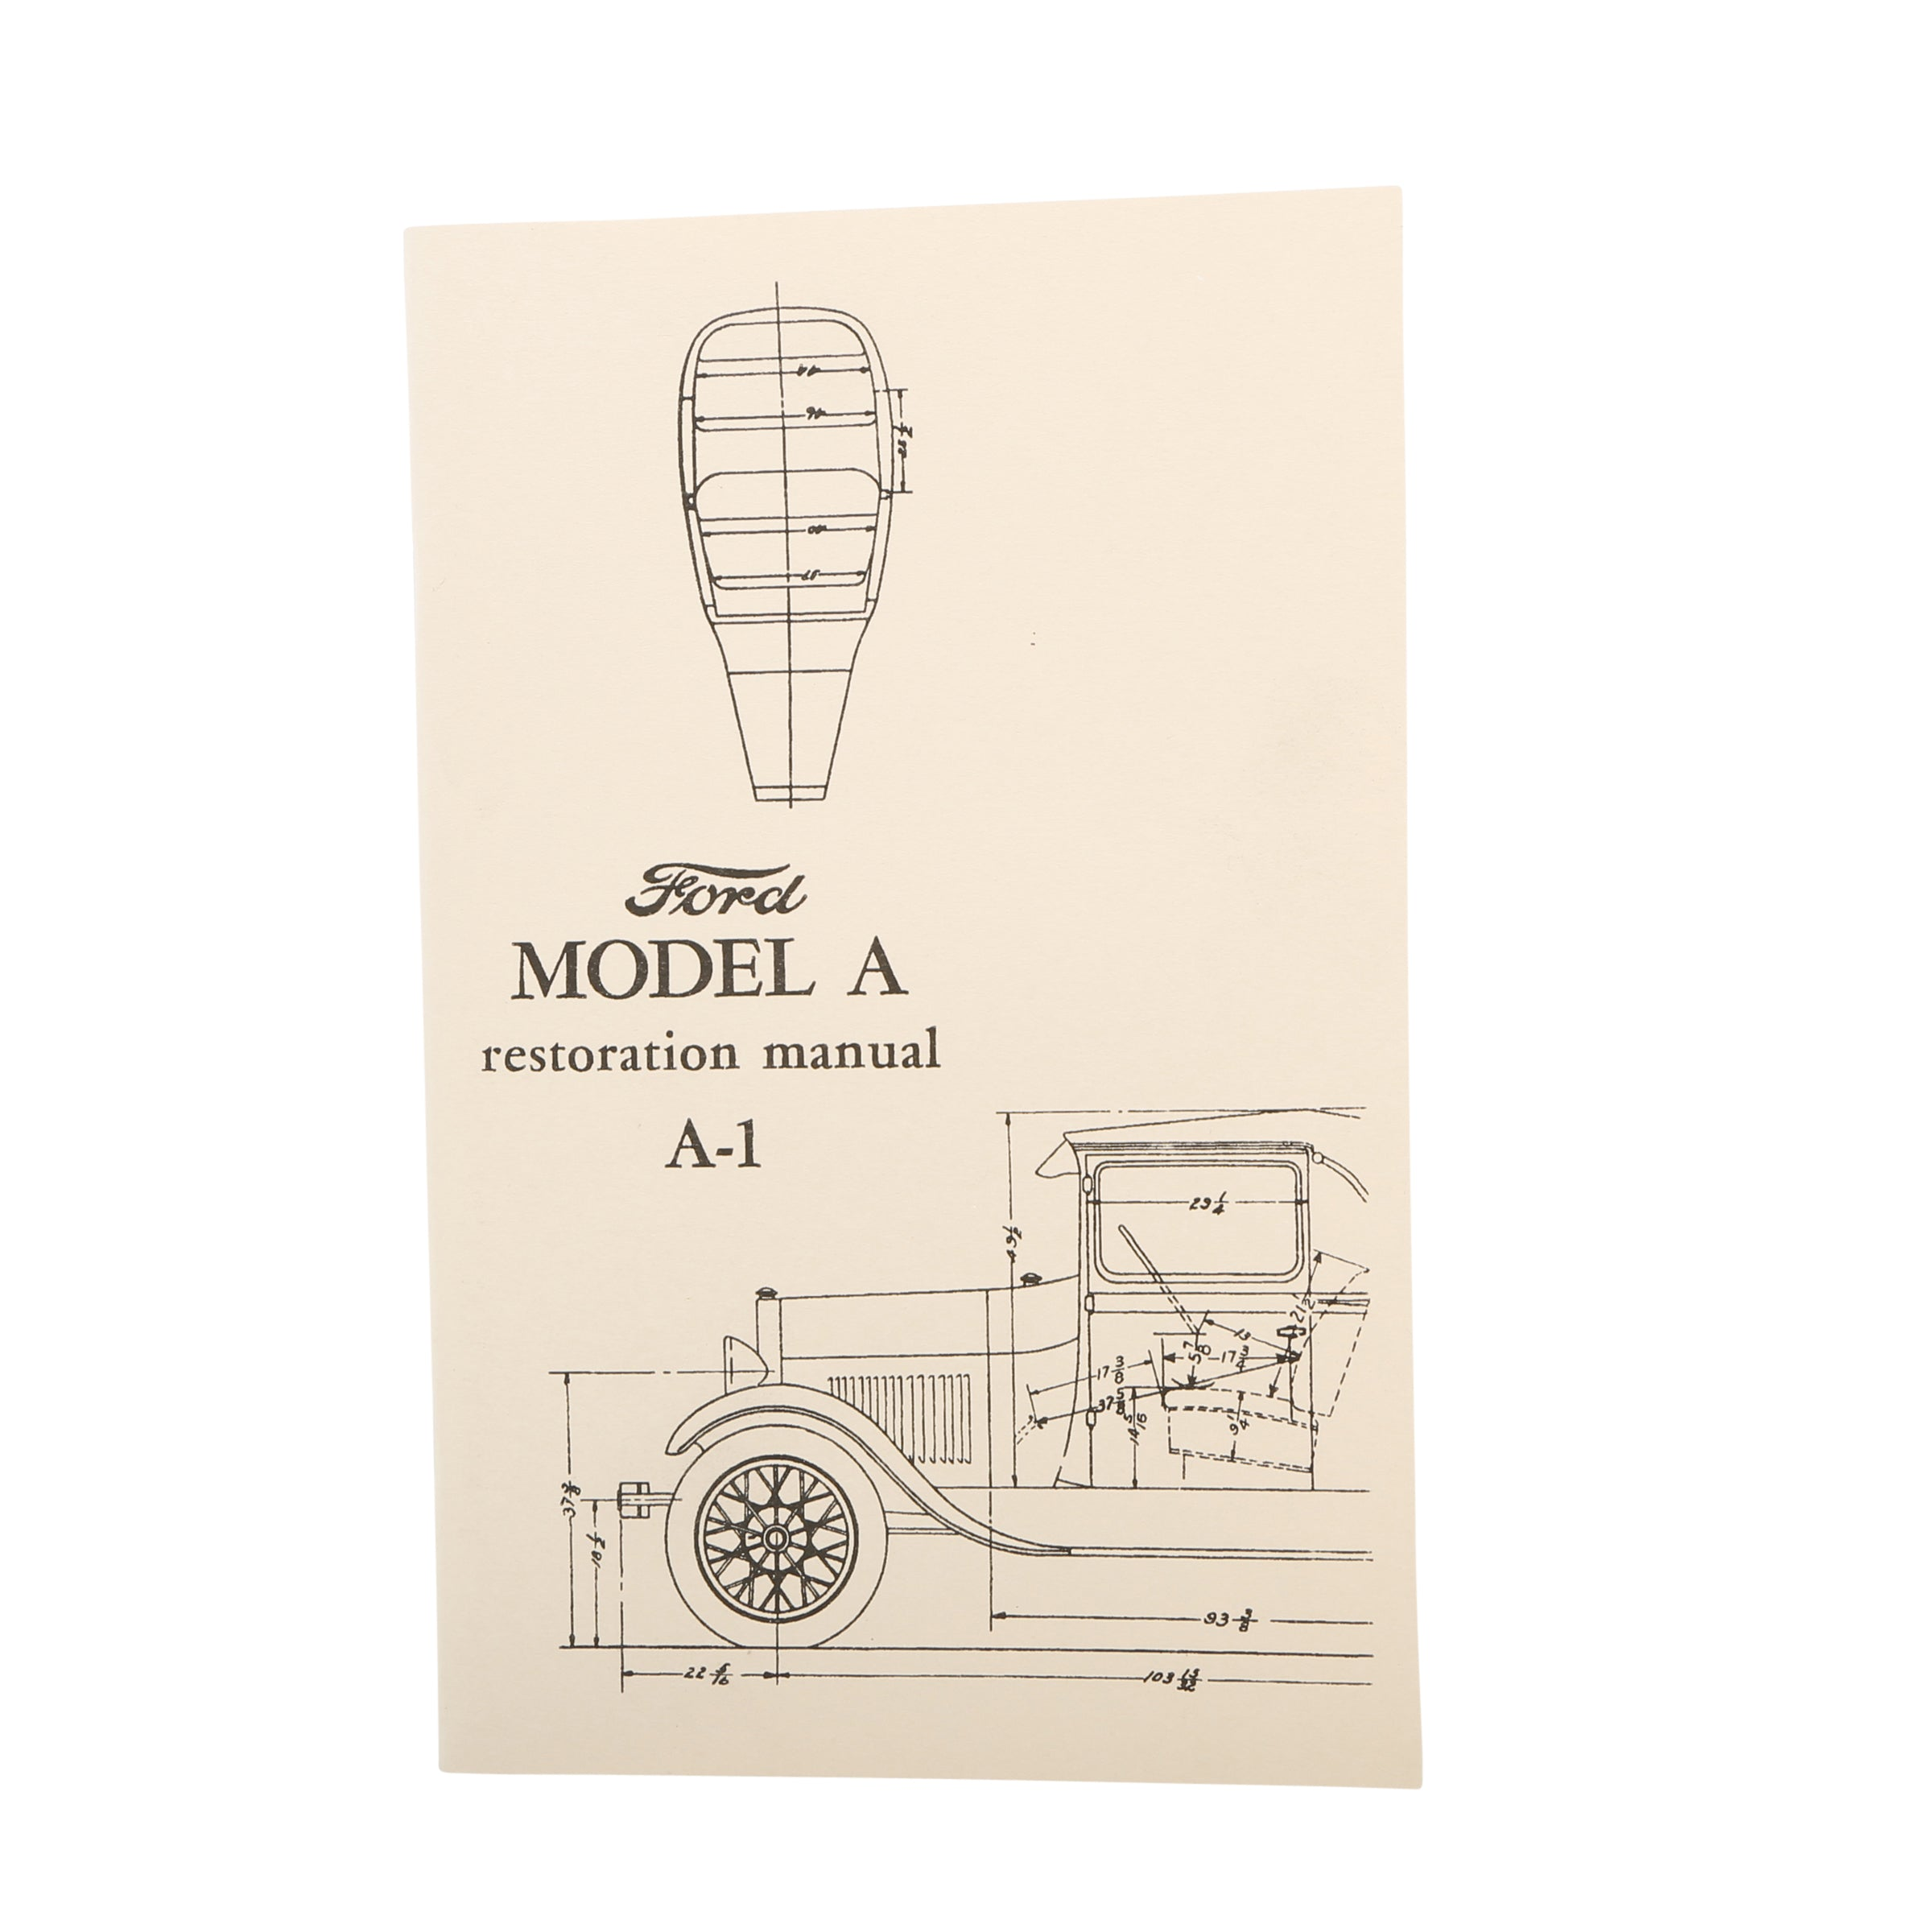 Model A Ford Restoration Manual